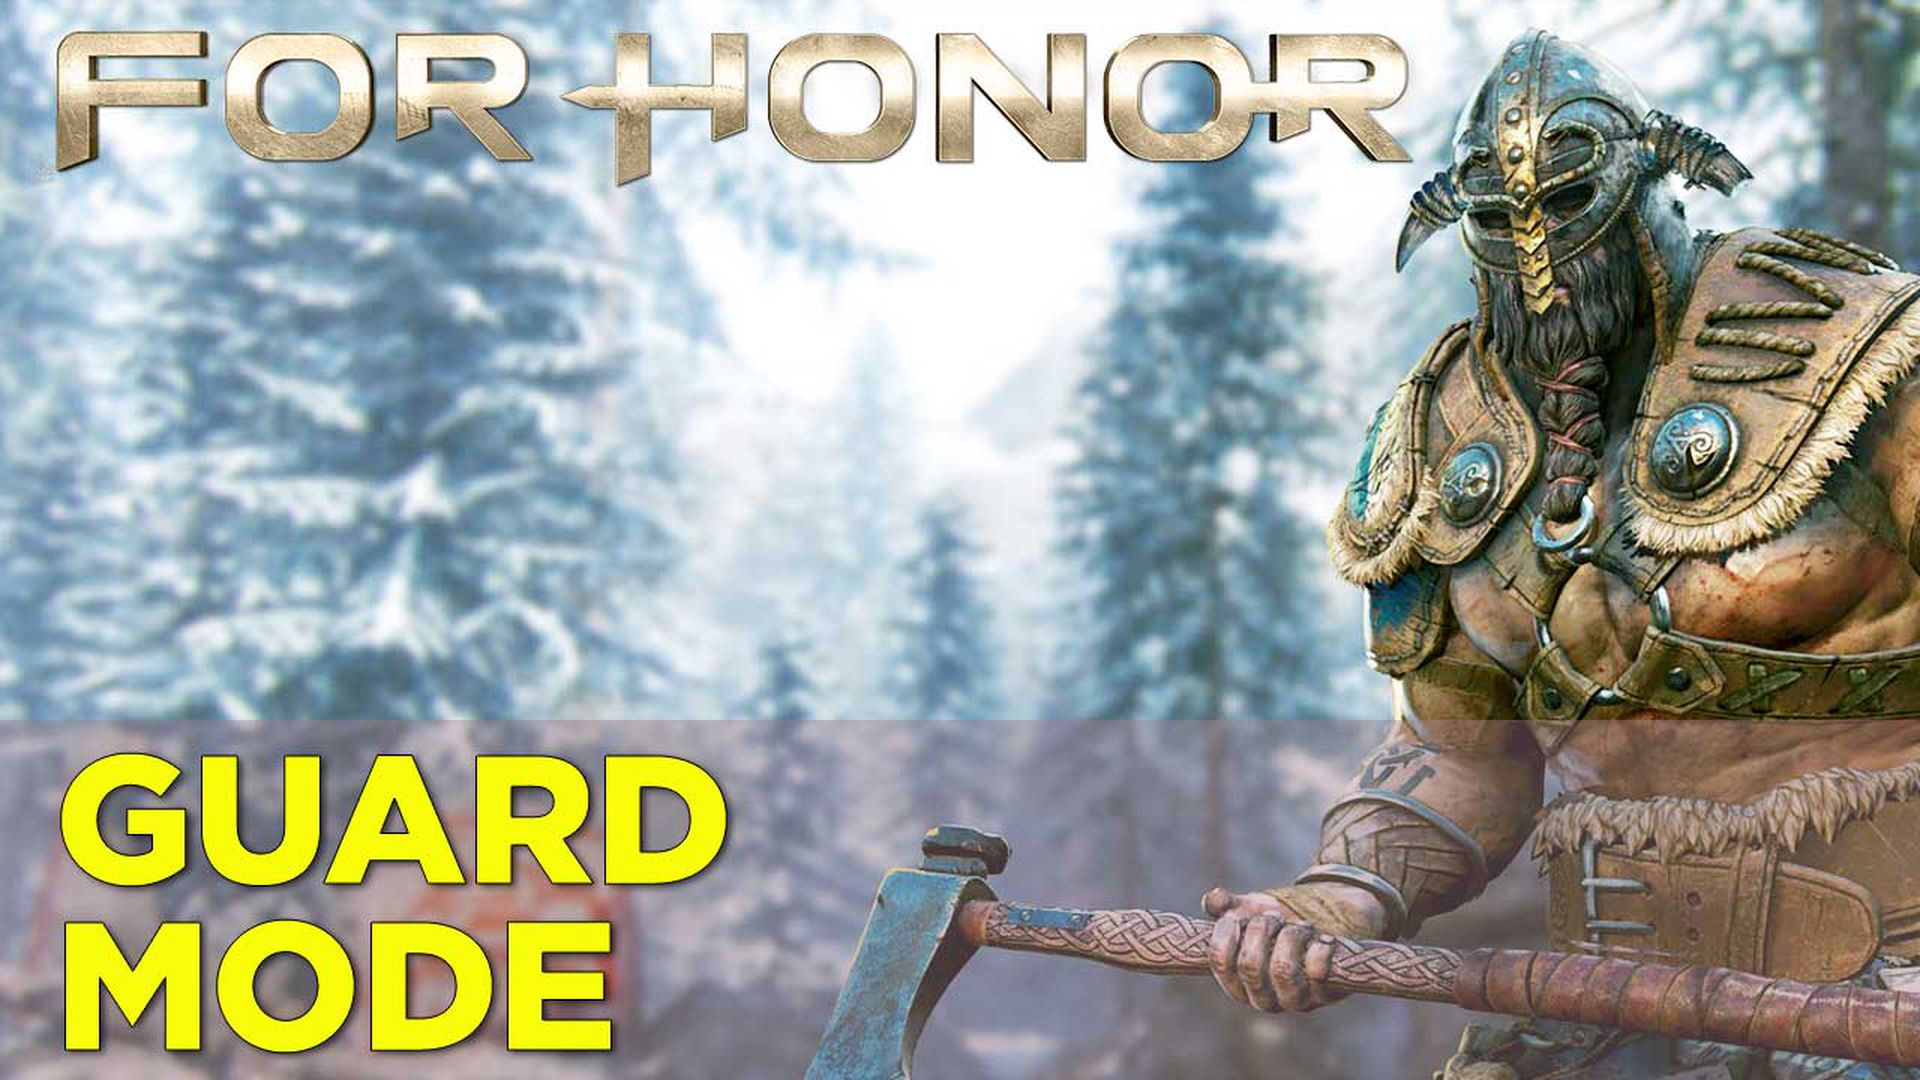 Understanding For Honor: A guide to bizarre combat - Polygon